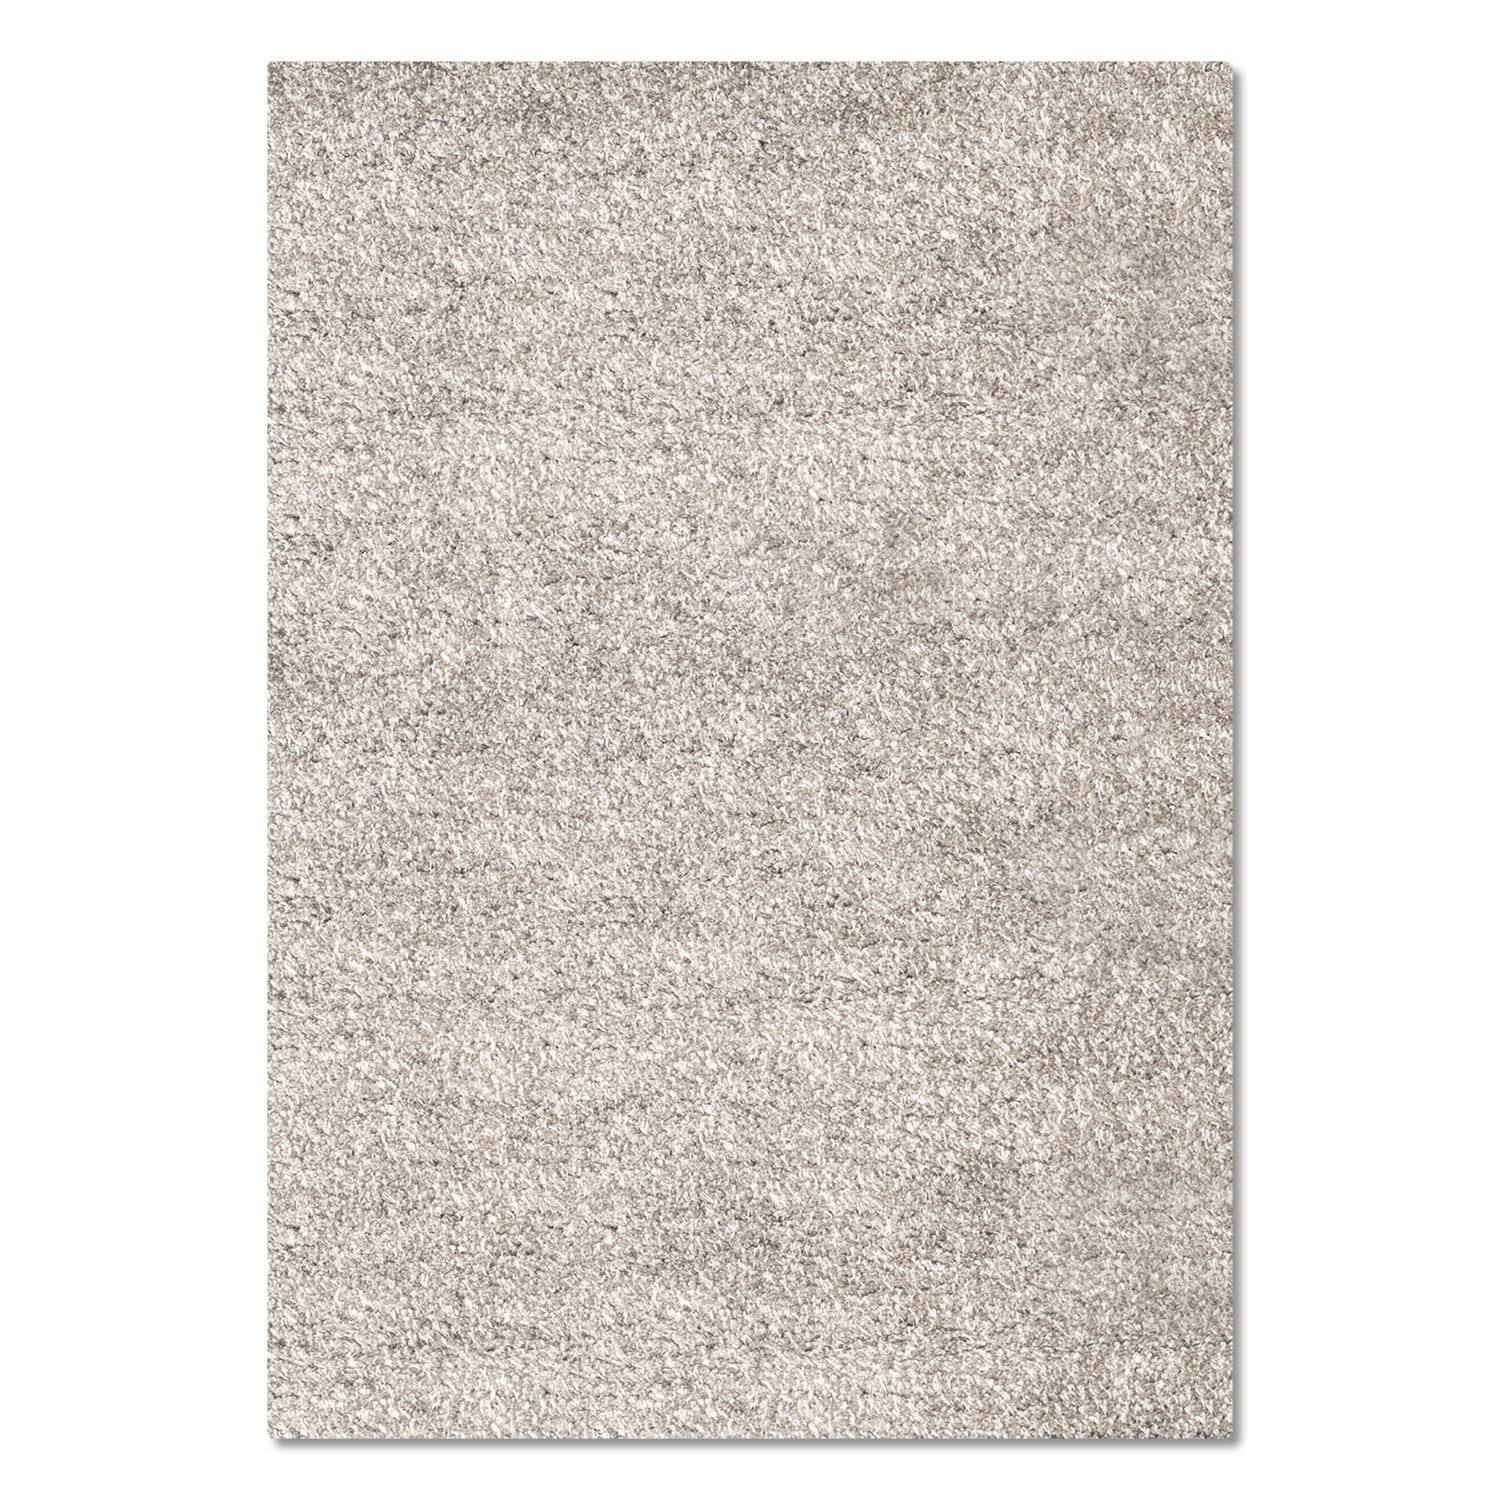 Comfort Light Gray Shag Area Rug (5' x 8')